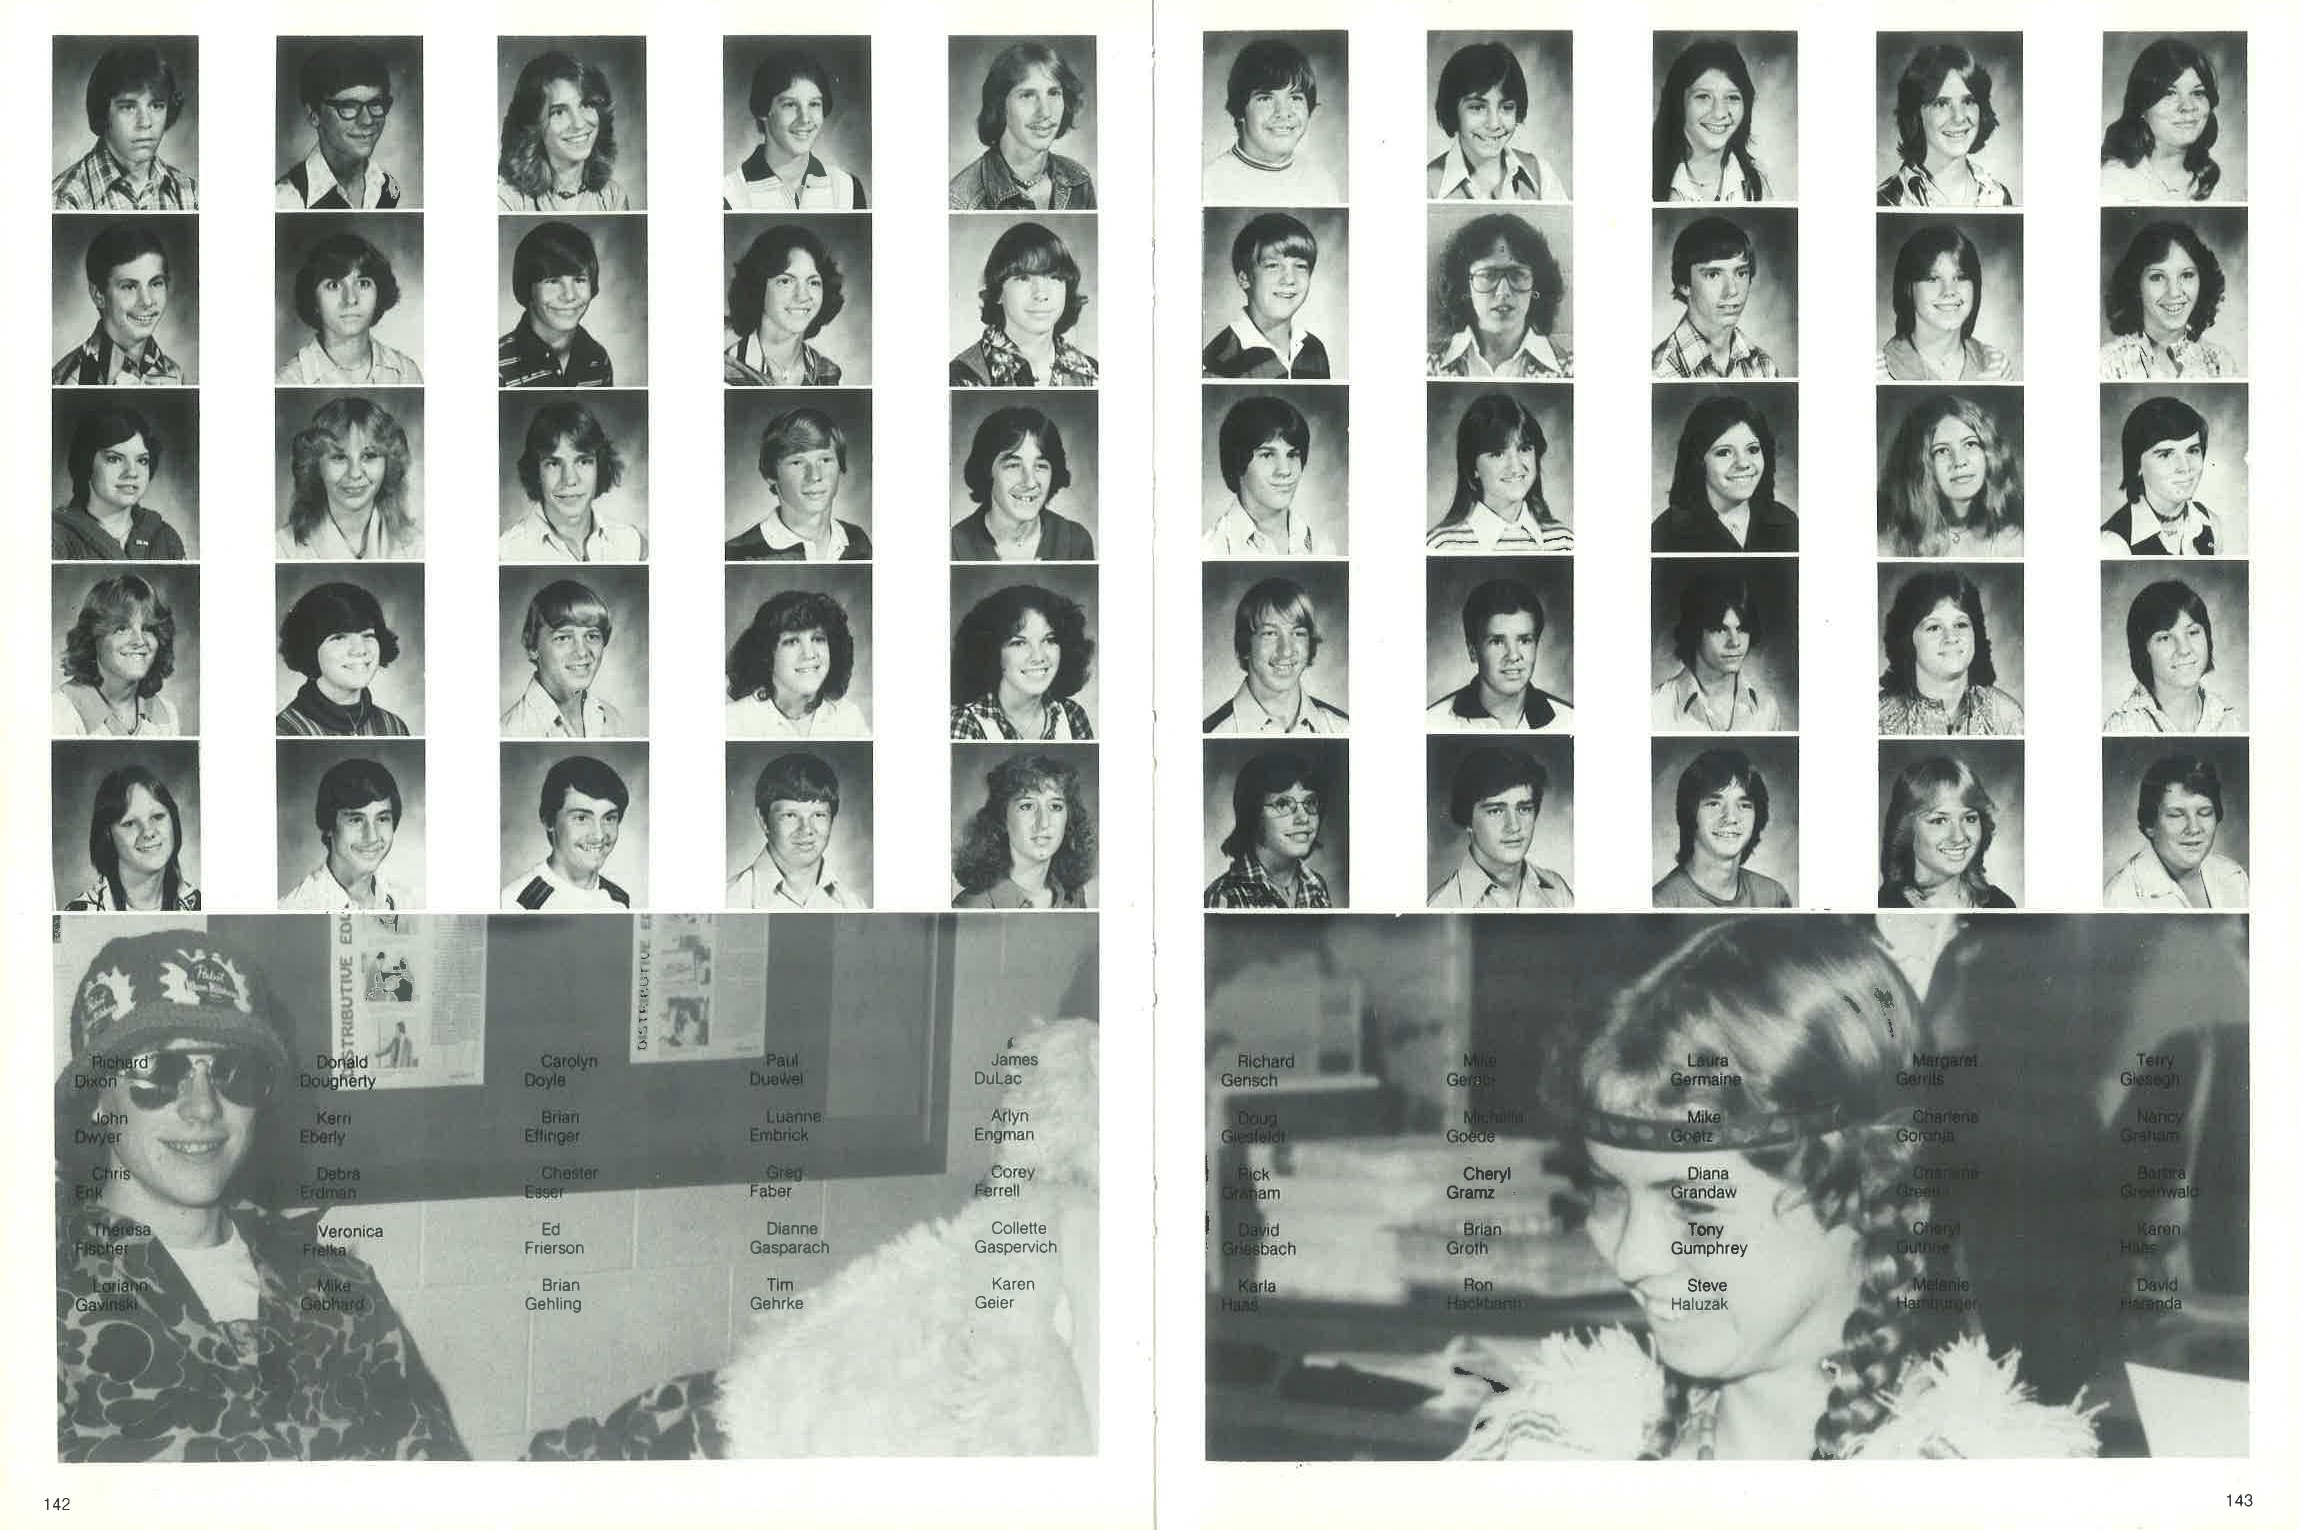 1979_Yearbook_134.jpg